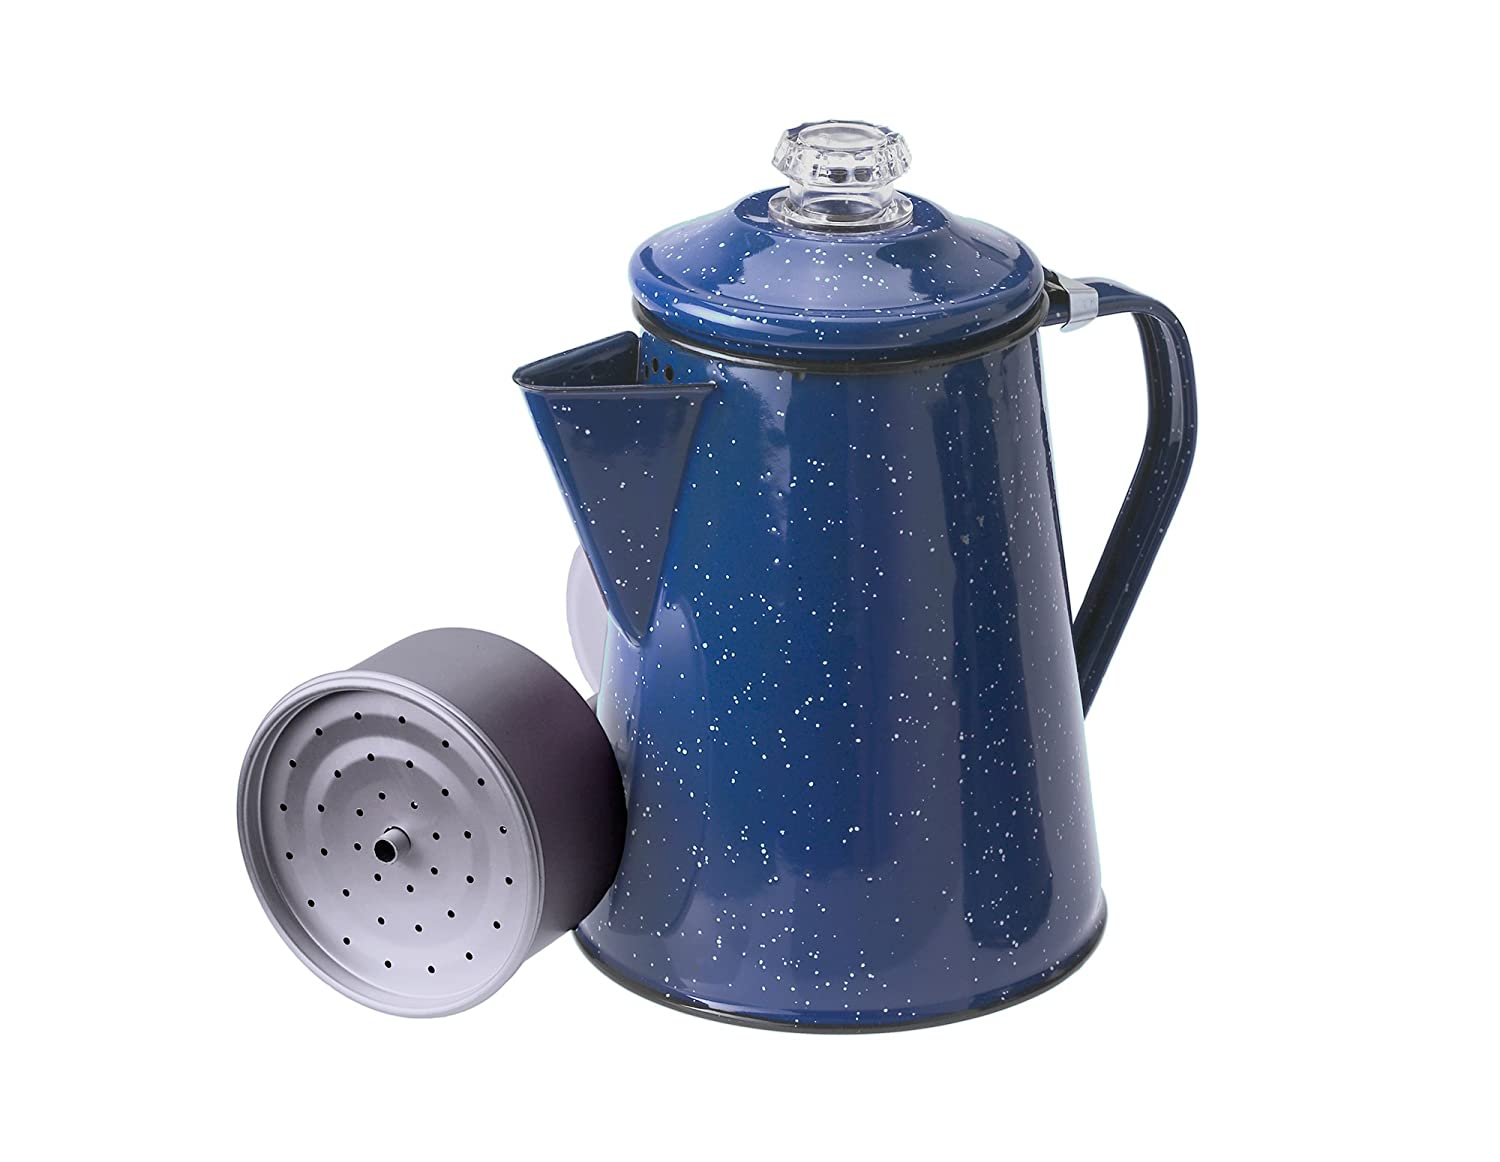 Gsi Coffee Pot 1.2 L with Percolator Insert GSIO5|#GSI Outdoors